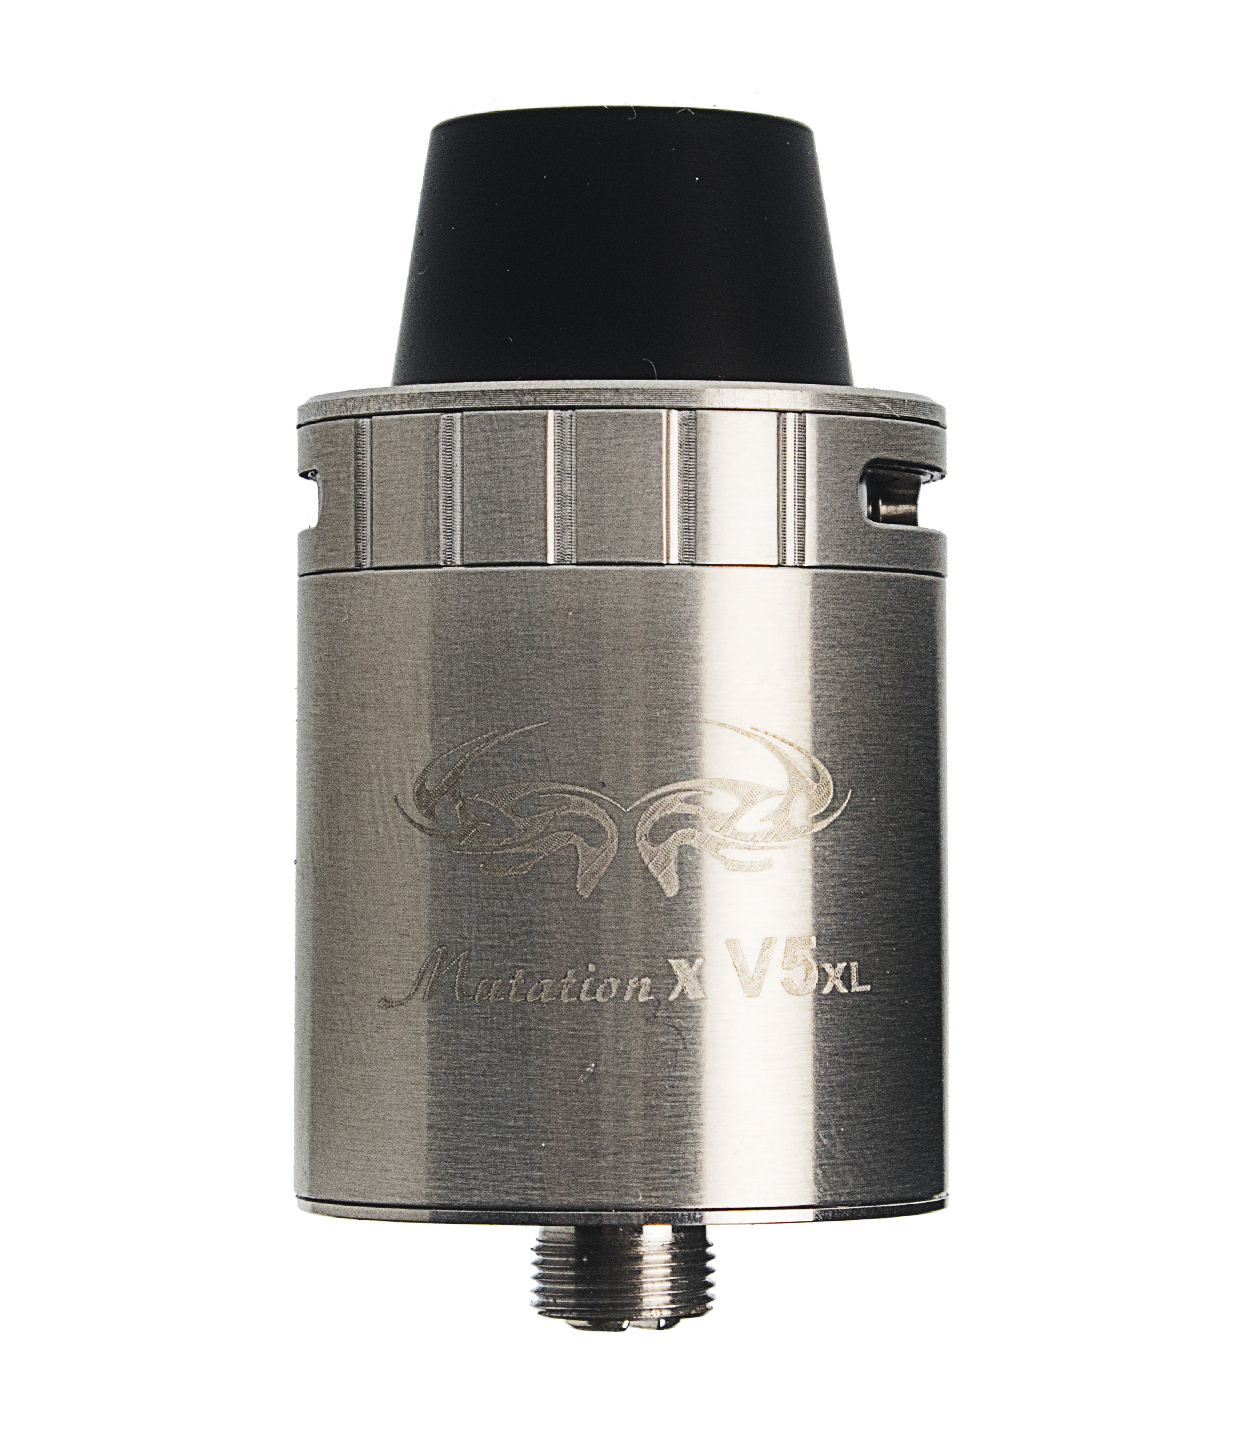 Indulgence: Атомайзер (RDA) Mutation X V5 XL